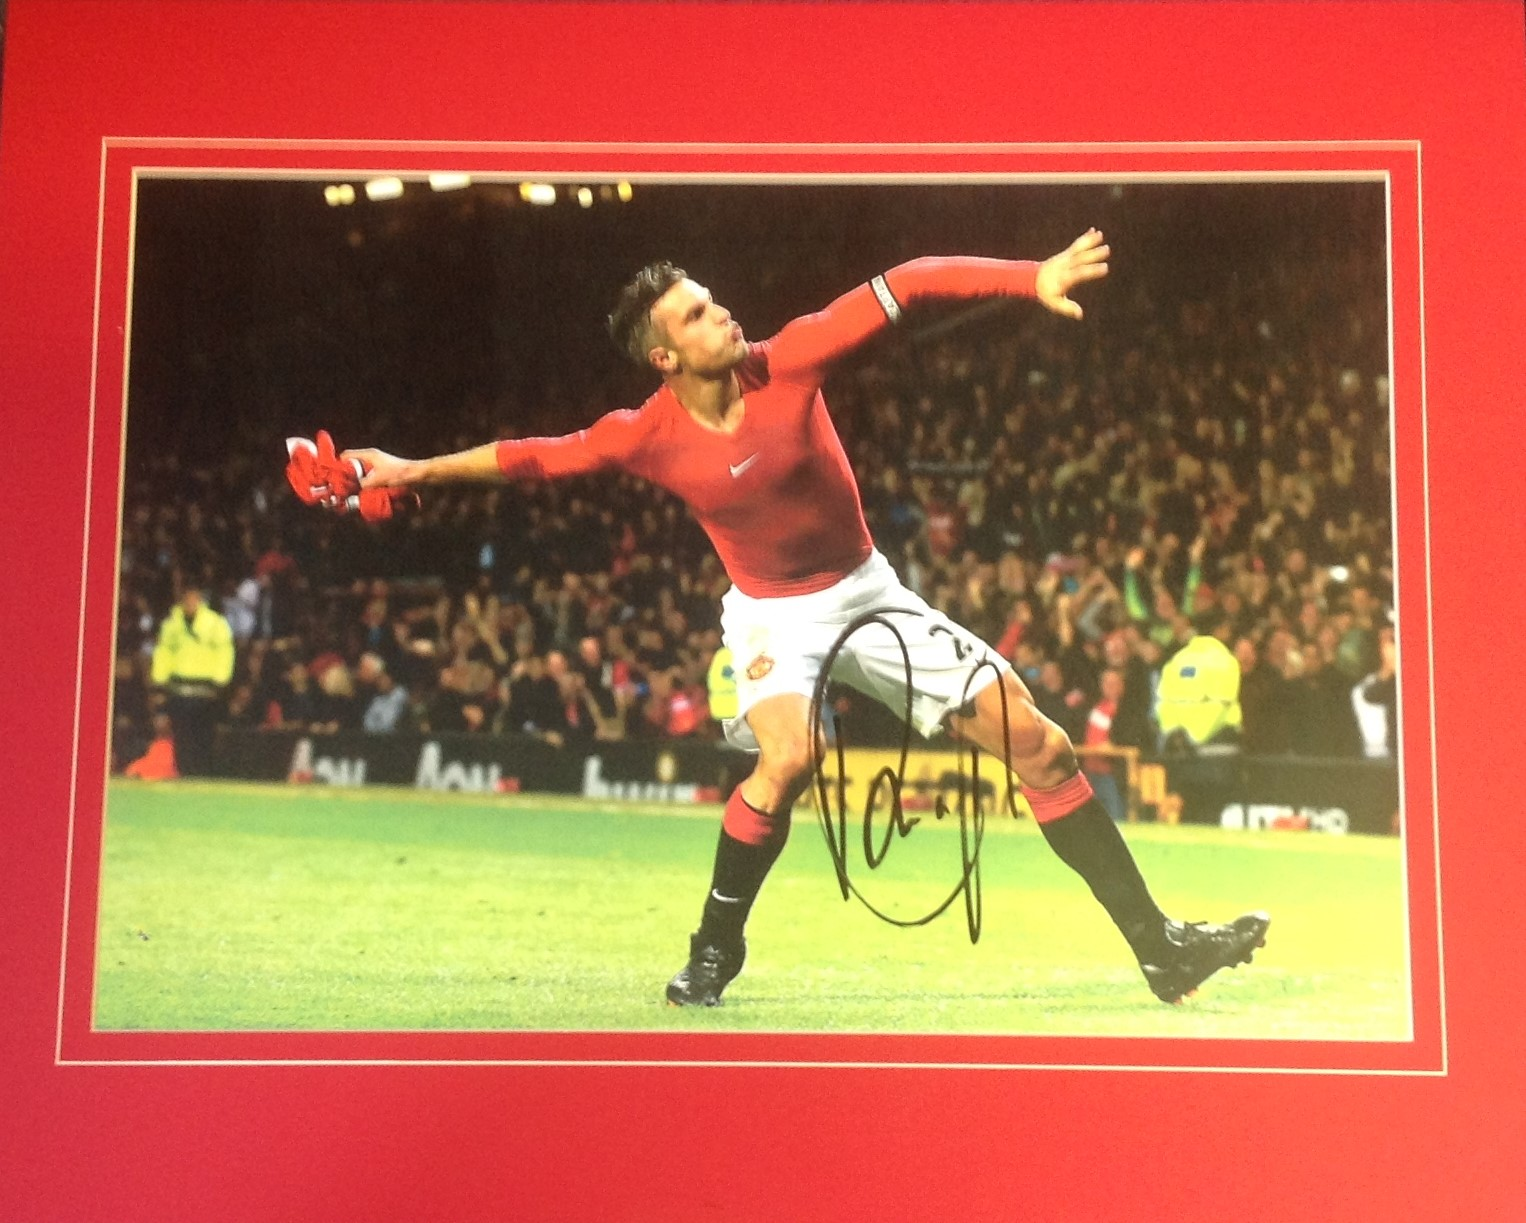 Lot 56 - Football Robin Van Persie signed 16x20 mounted colour photo pictured celebrating for Manchester